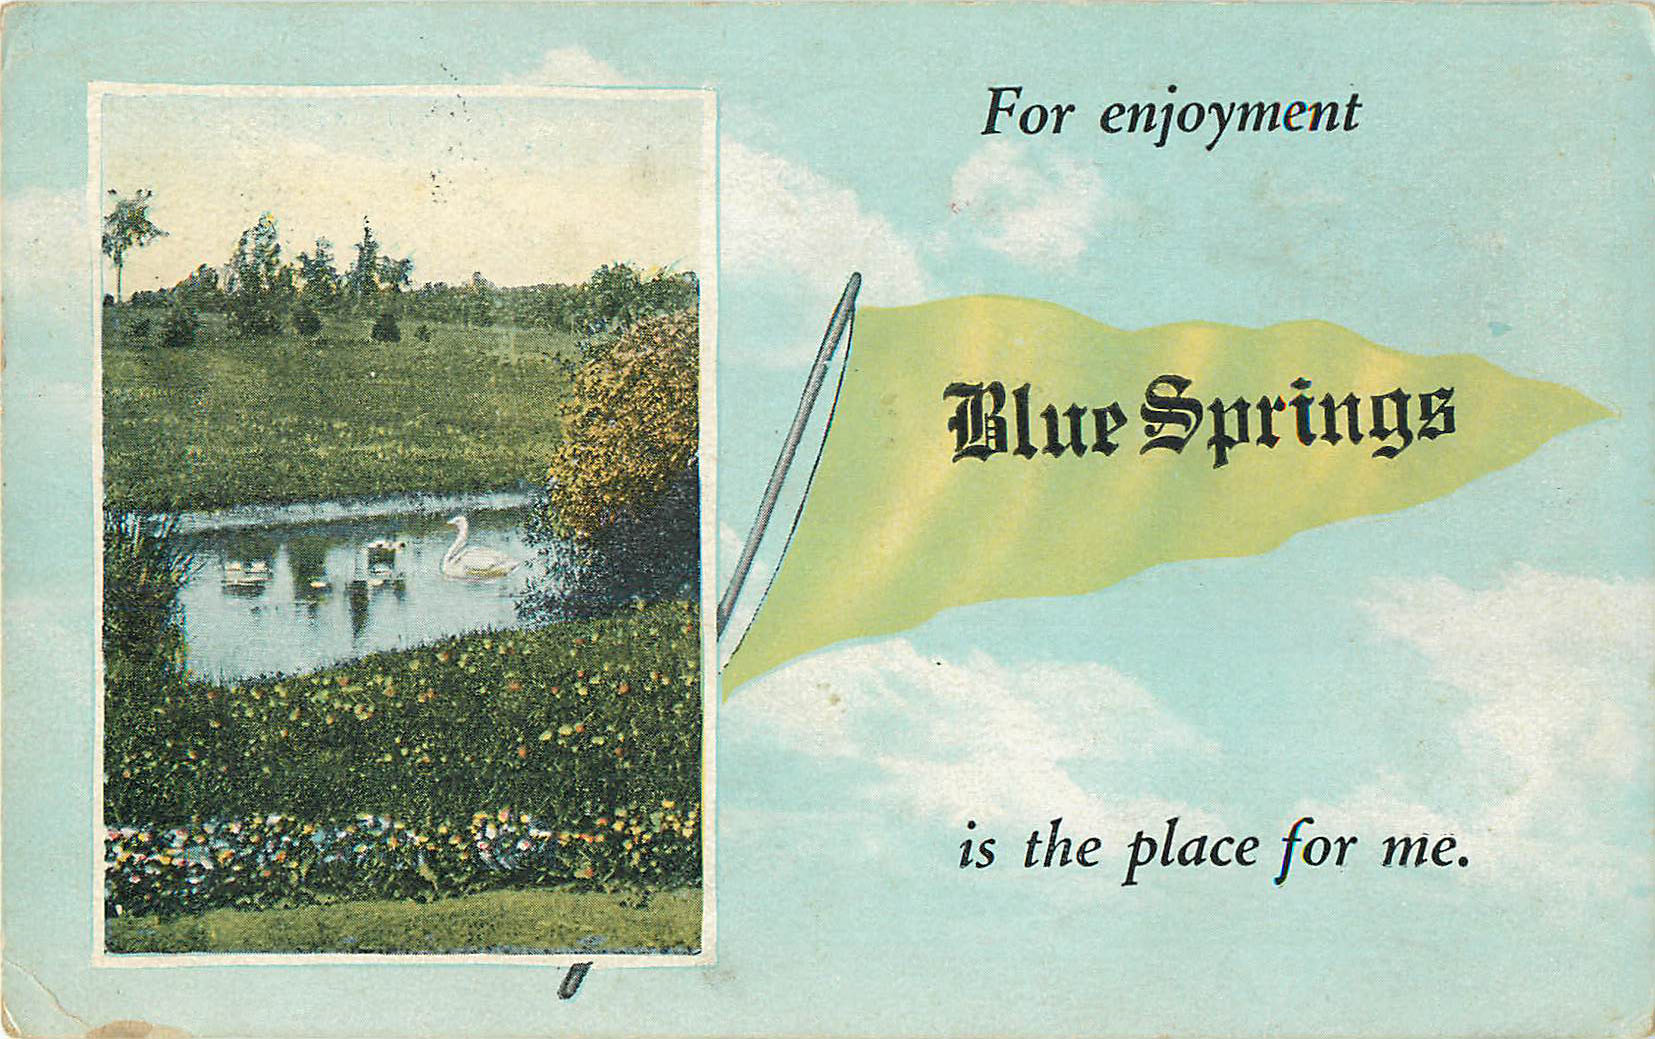 For enjoyment Blue Springs is the place - Pennant Postcard